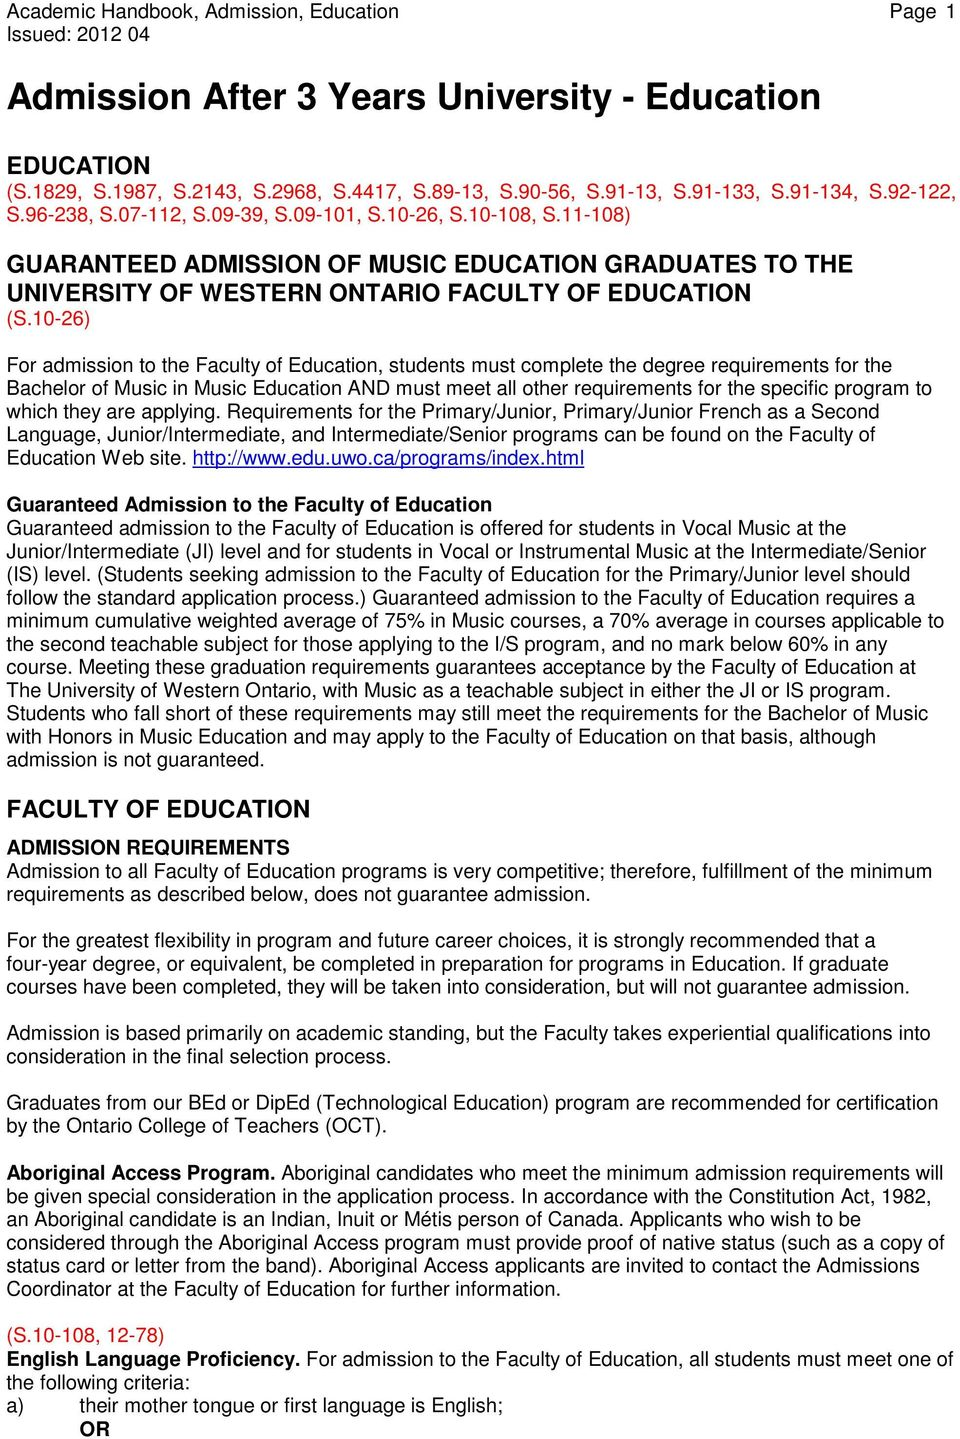 10-26) For admission to the Faculty of Education, students must complete the degree requirements for the Bachelor of Music in Music Education AND must meet all other requirements for the specific